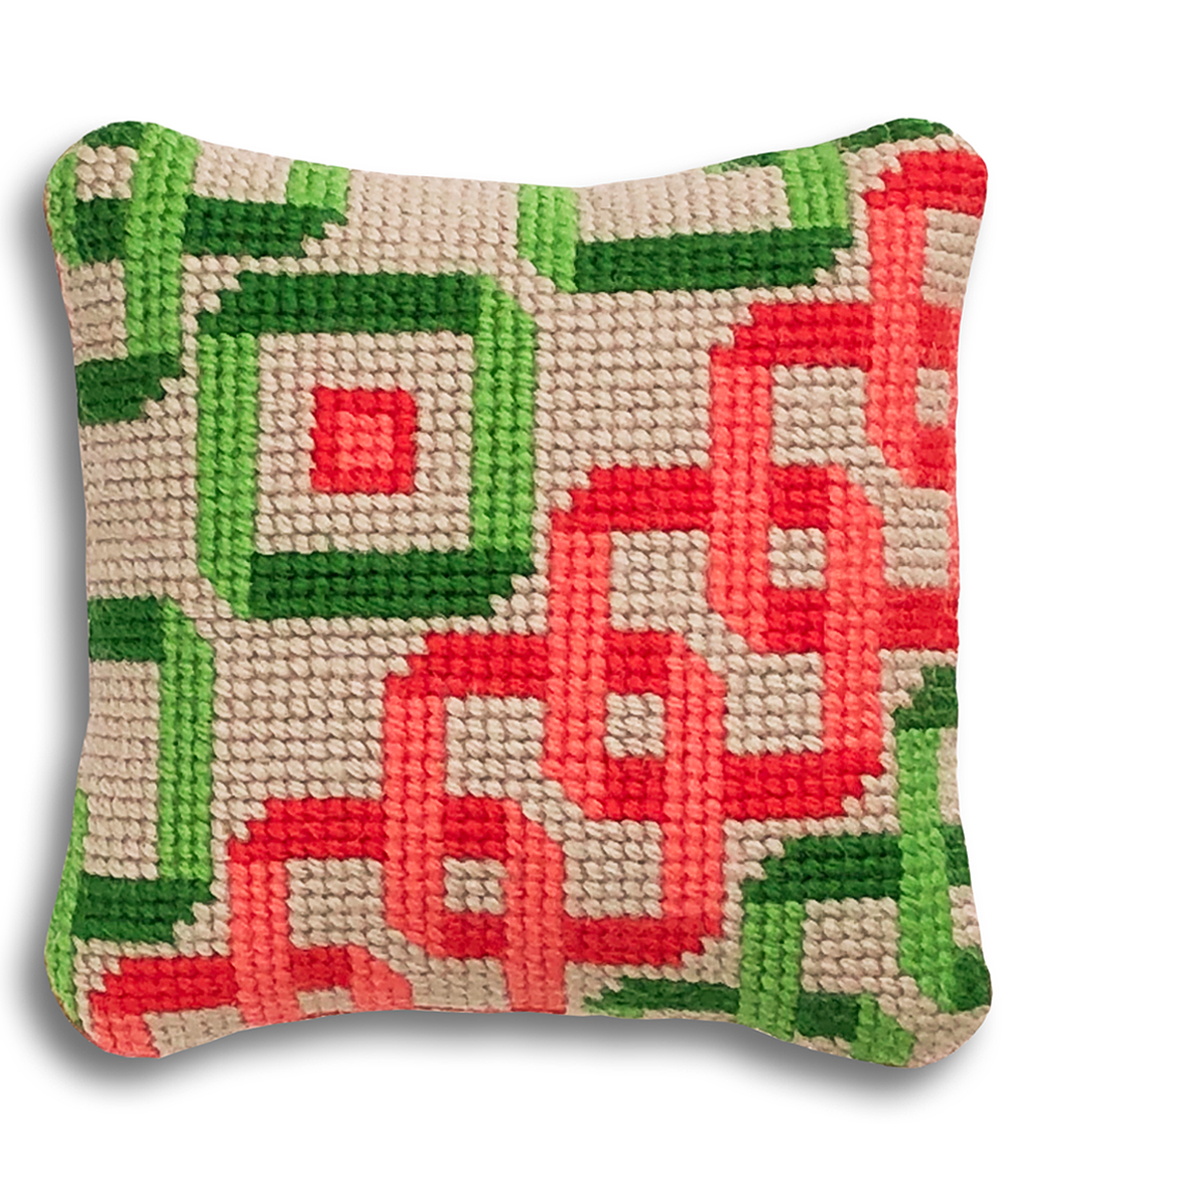 NEW! Interlocking Squares mini kit  Coral and green colourway  £16  (includes free UK postage)